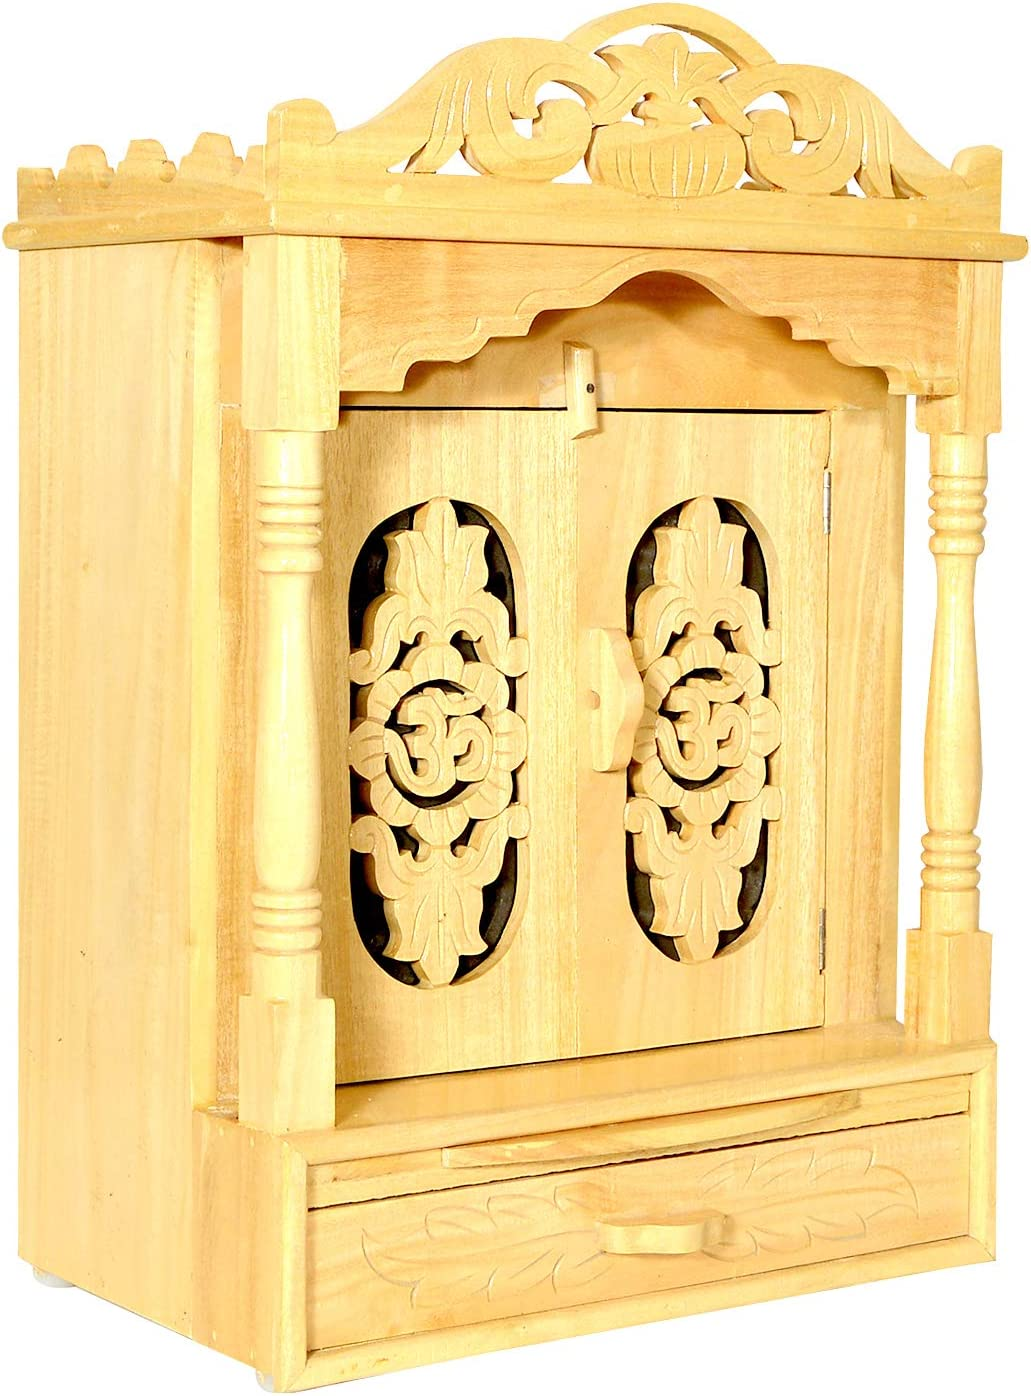 Wooden Temple/Mandir for Home/Temple for Home Wall/Home Temple/Mandir/Pooja Mandir/Pooja Temple/Cabinet Temple/Mandap/Temple for Home/Handicraft Sevan Wooden Temple AMBA AHTP007